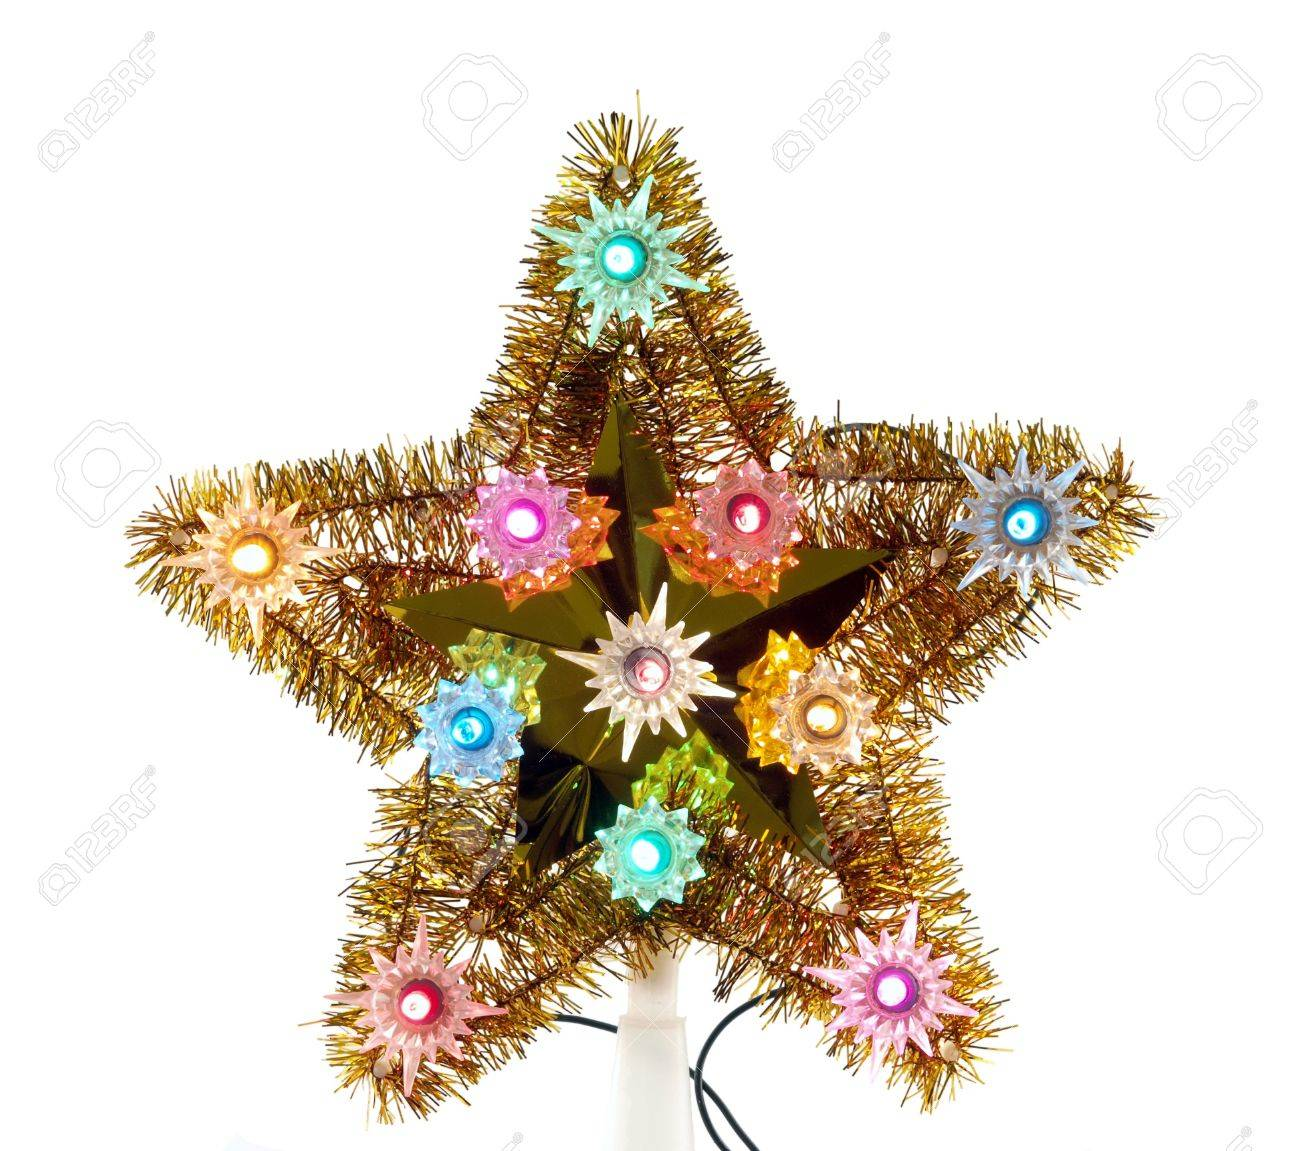 Vintage Christmas Tree Star Decoration From The 1960's Stock Photo   6879355